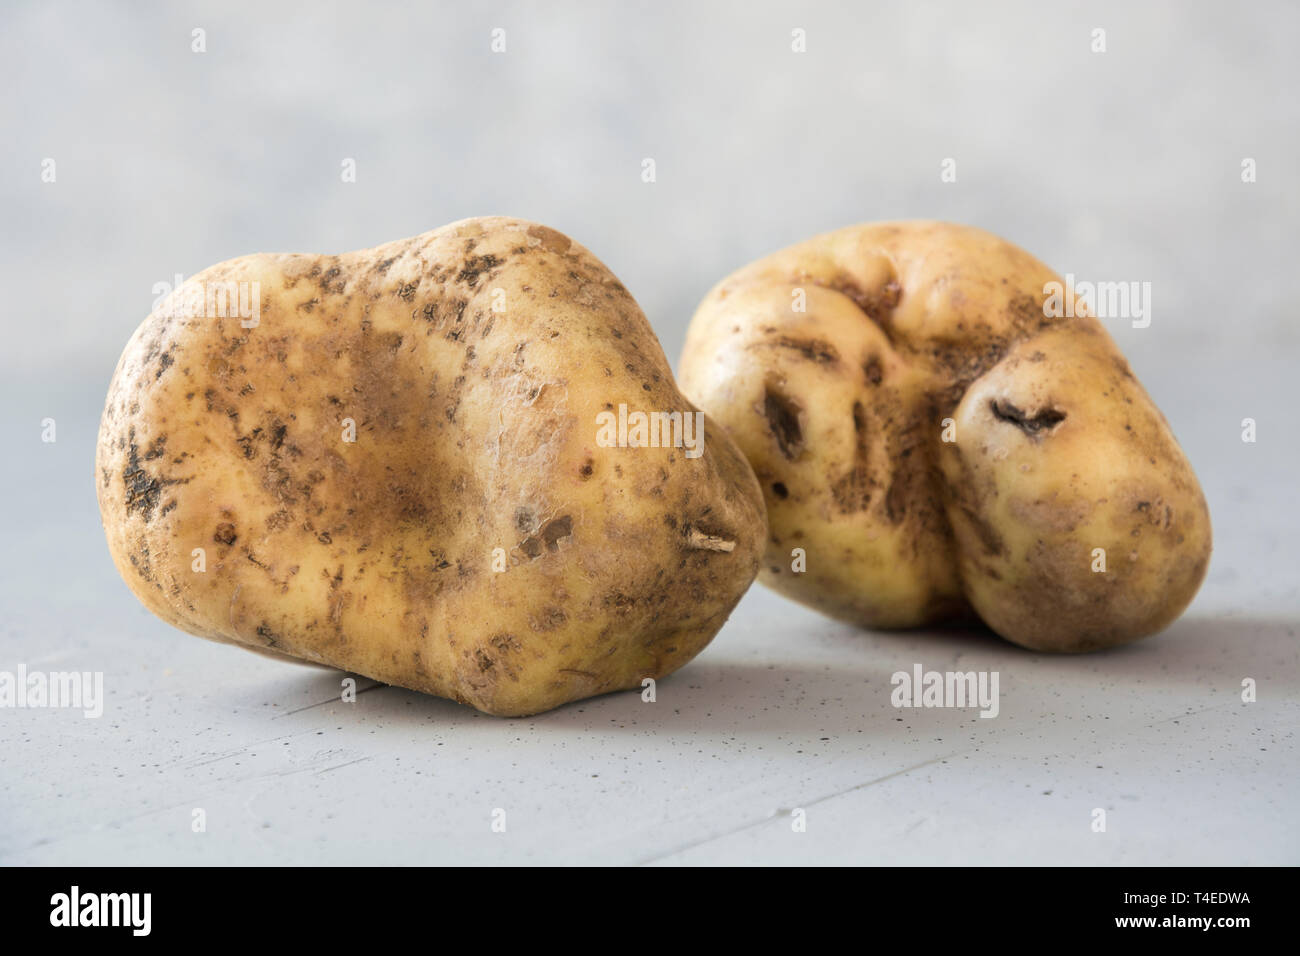 Ugly organic abnormal potatoes. Concept organic vegetables. Close up. Stock Photo